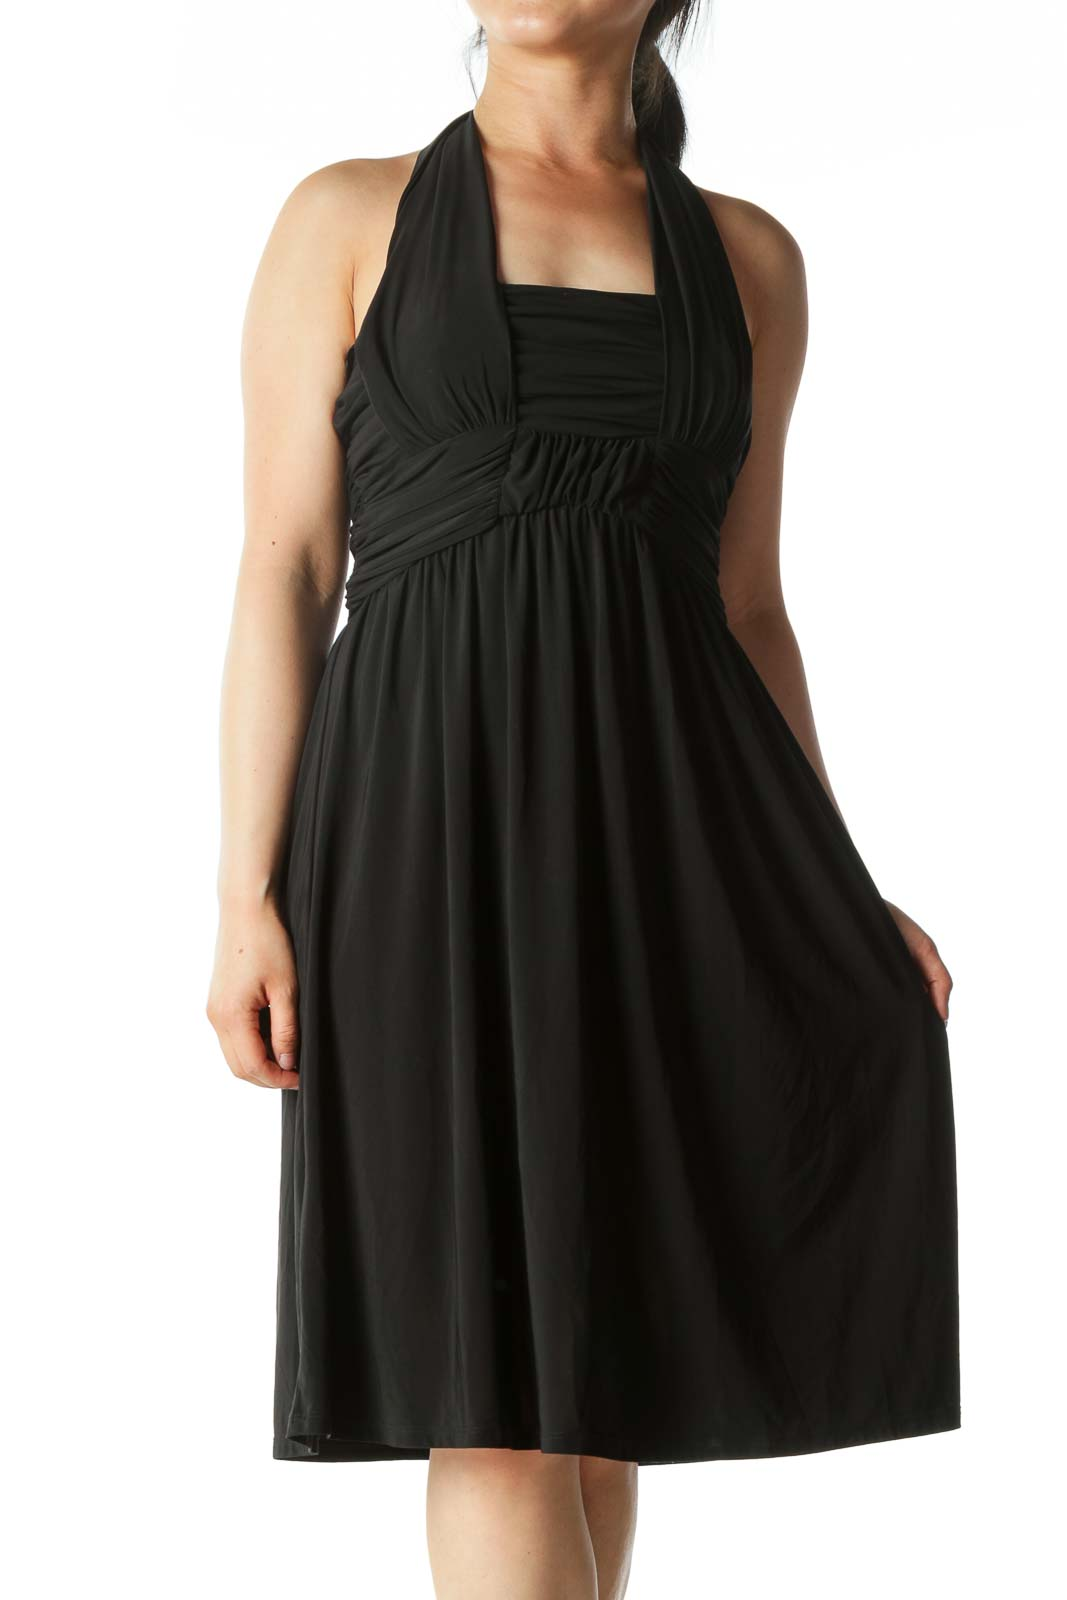 Black Stretch Scrunched Halter-Neck Cocktail Dress Front